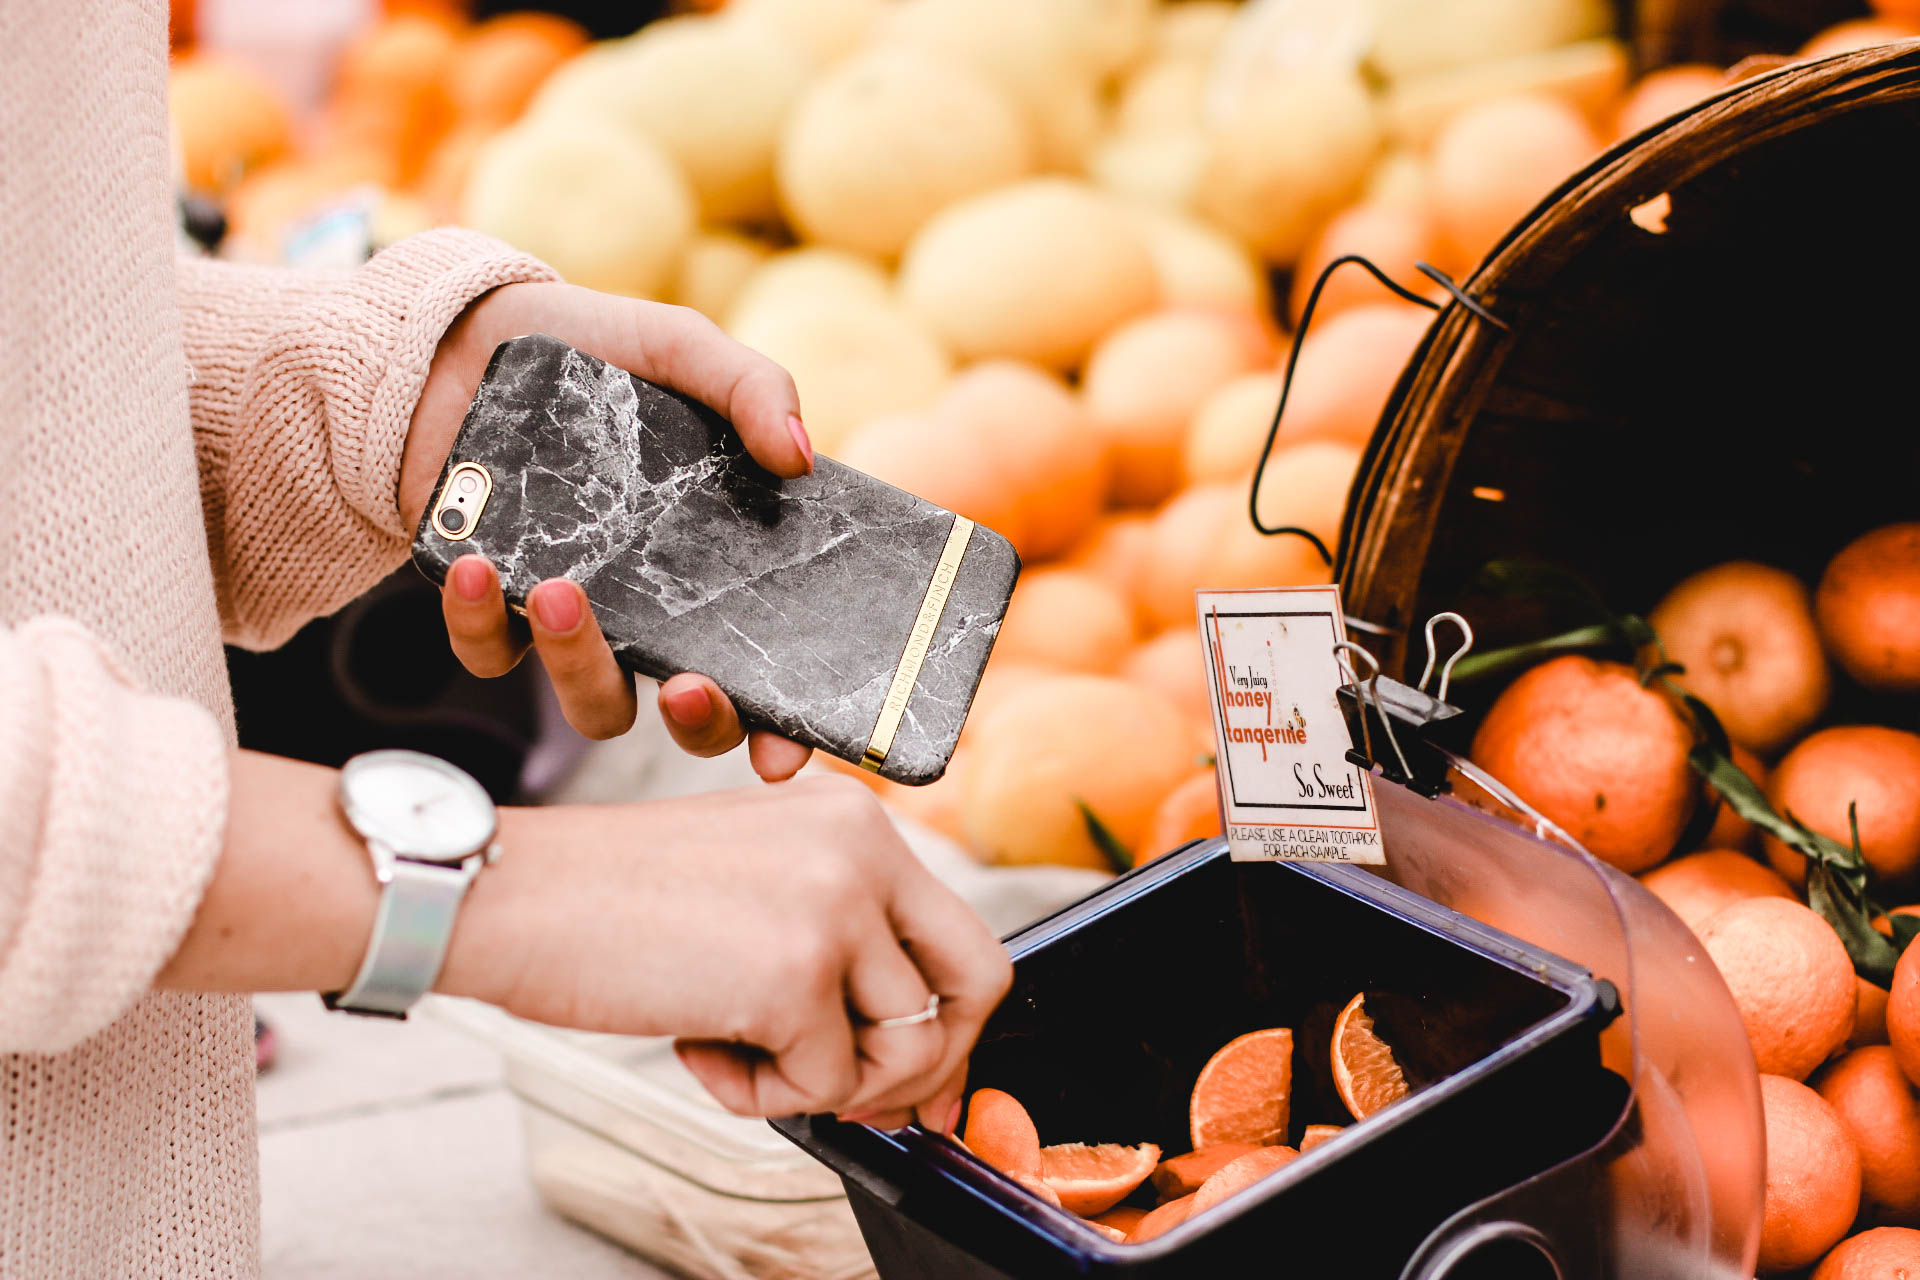 lifestyle-blogger-jamialix-picking-oranges-farmers-market-pretty-phone-case-blog-post